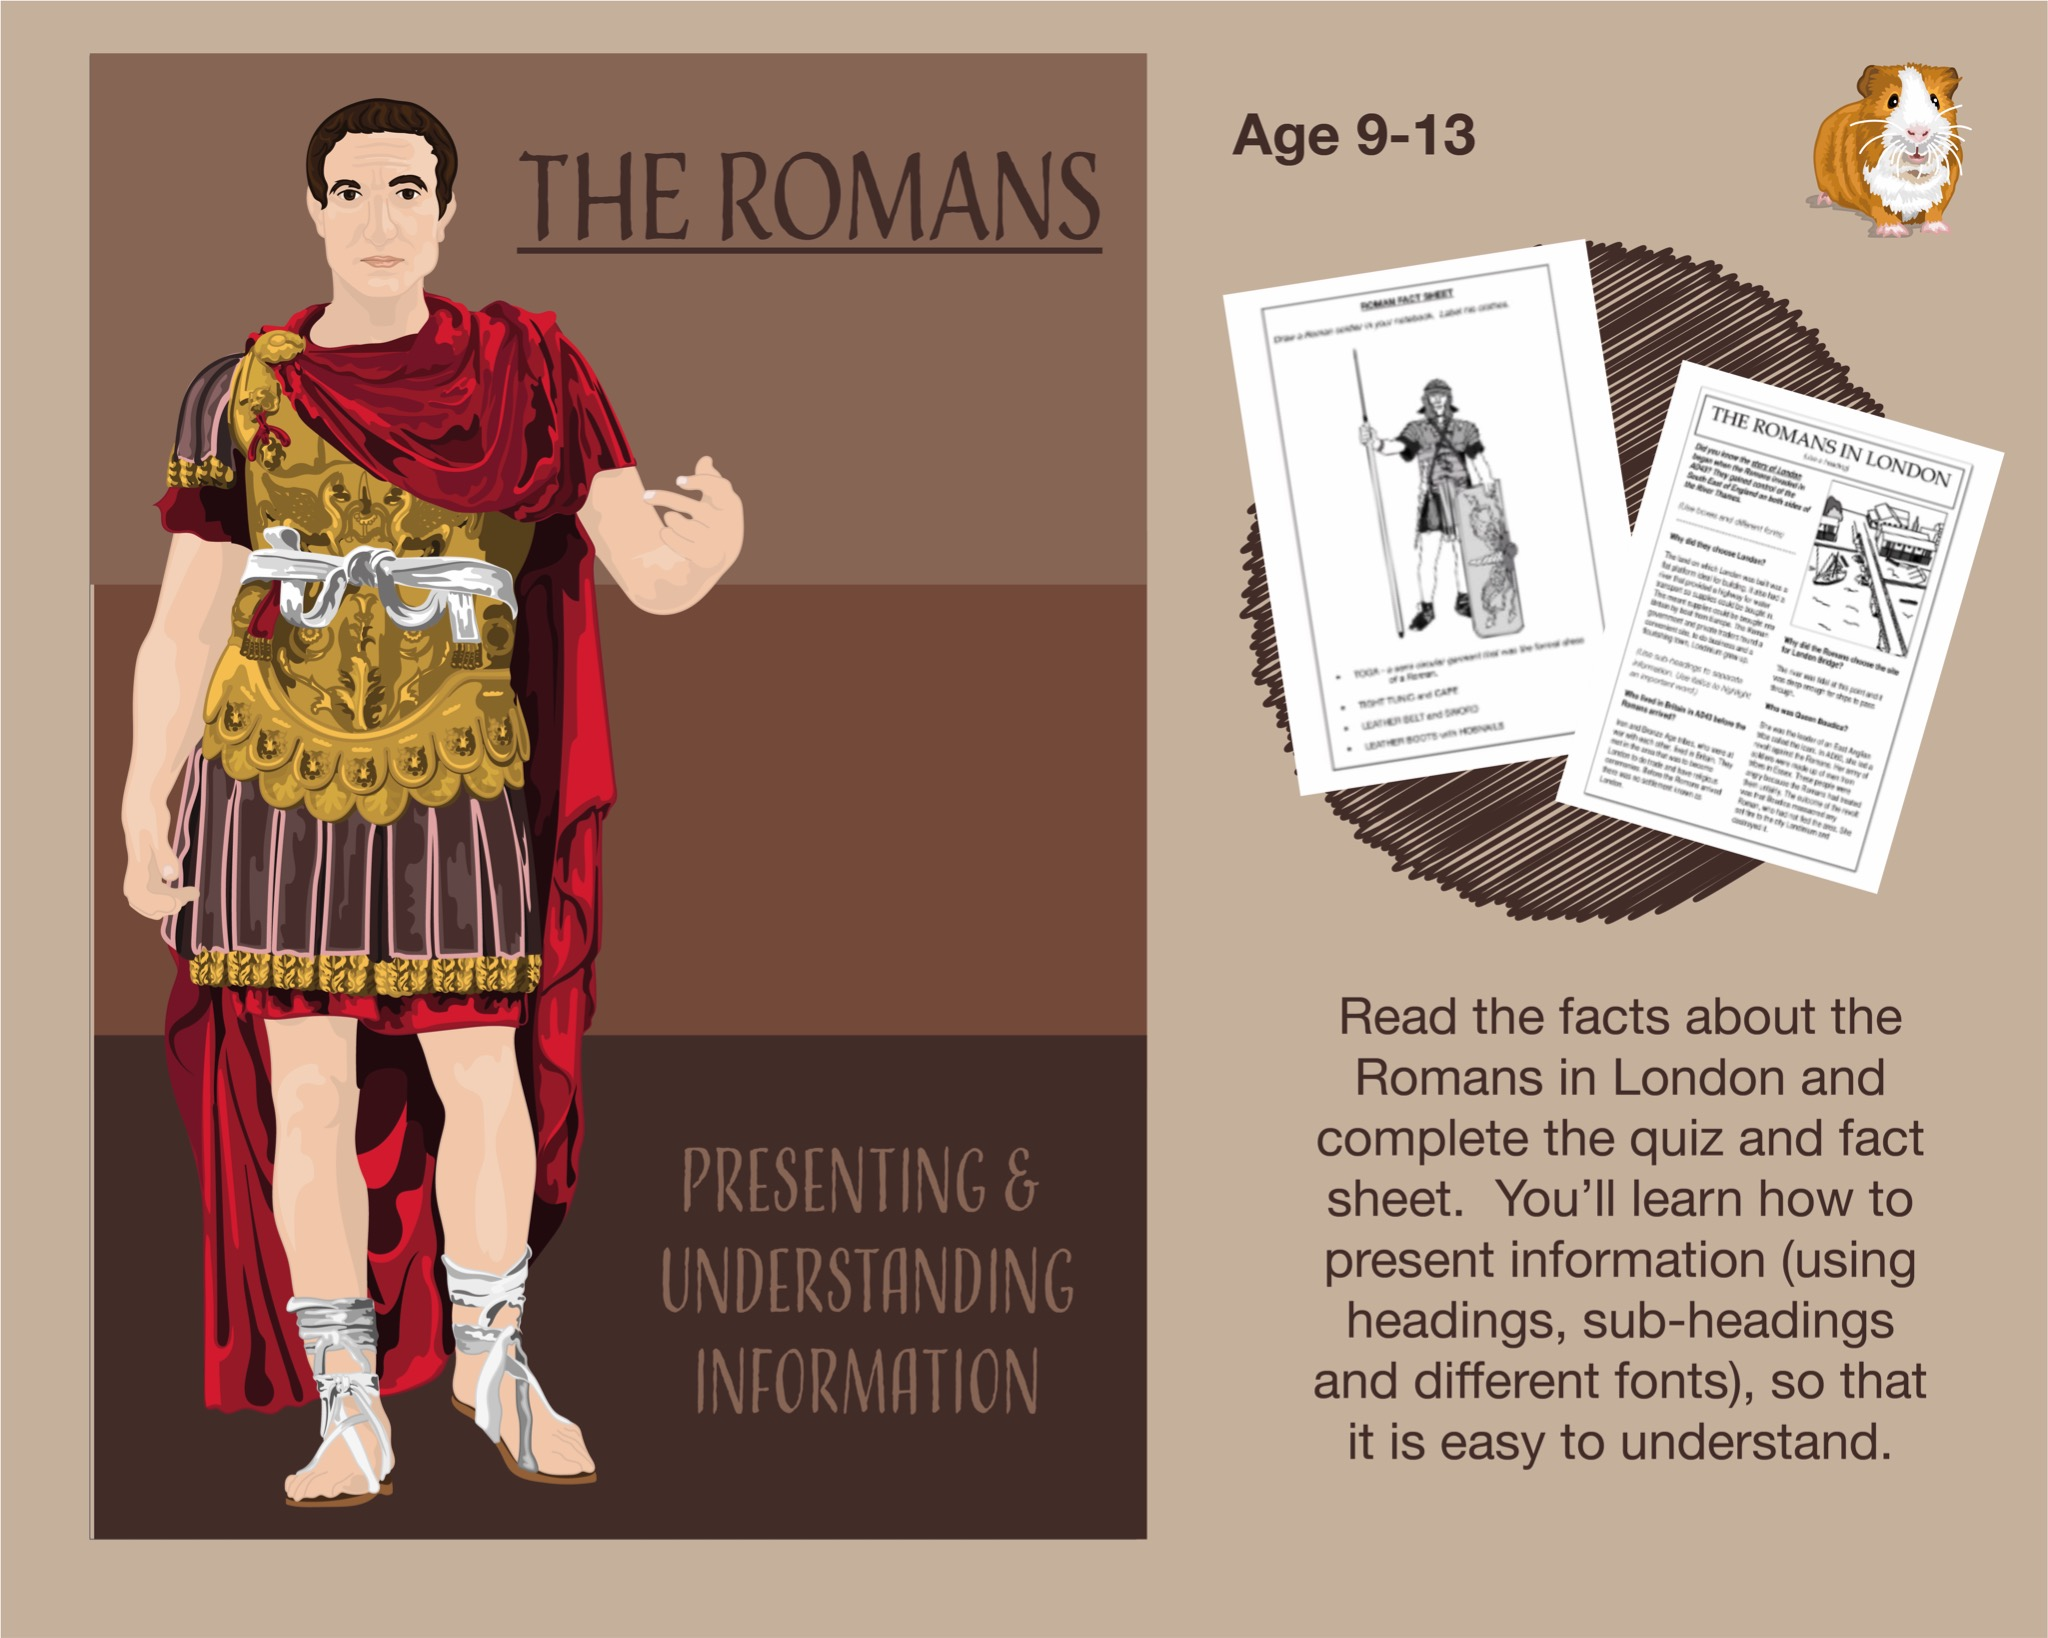 Presenting And Understanding Information: The Romans (9-14 years)